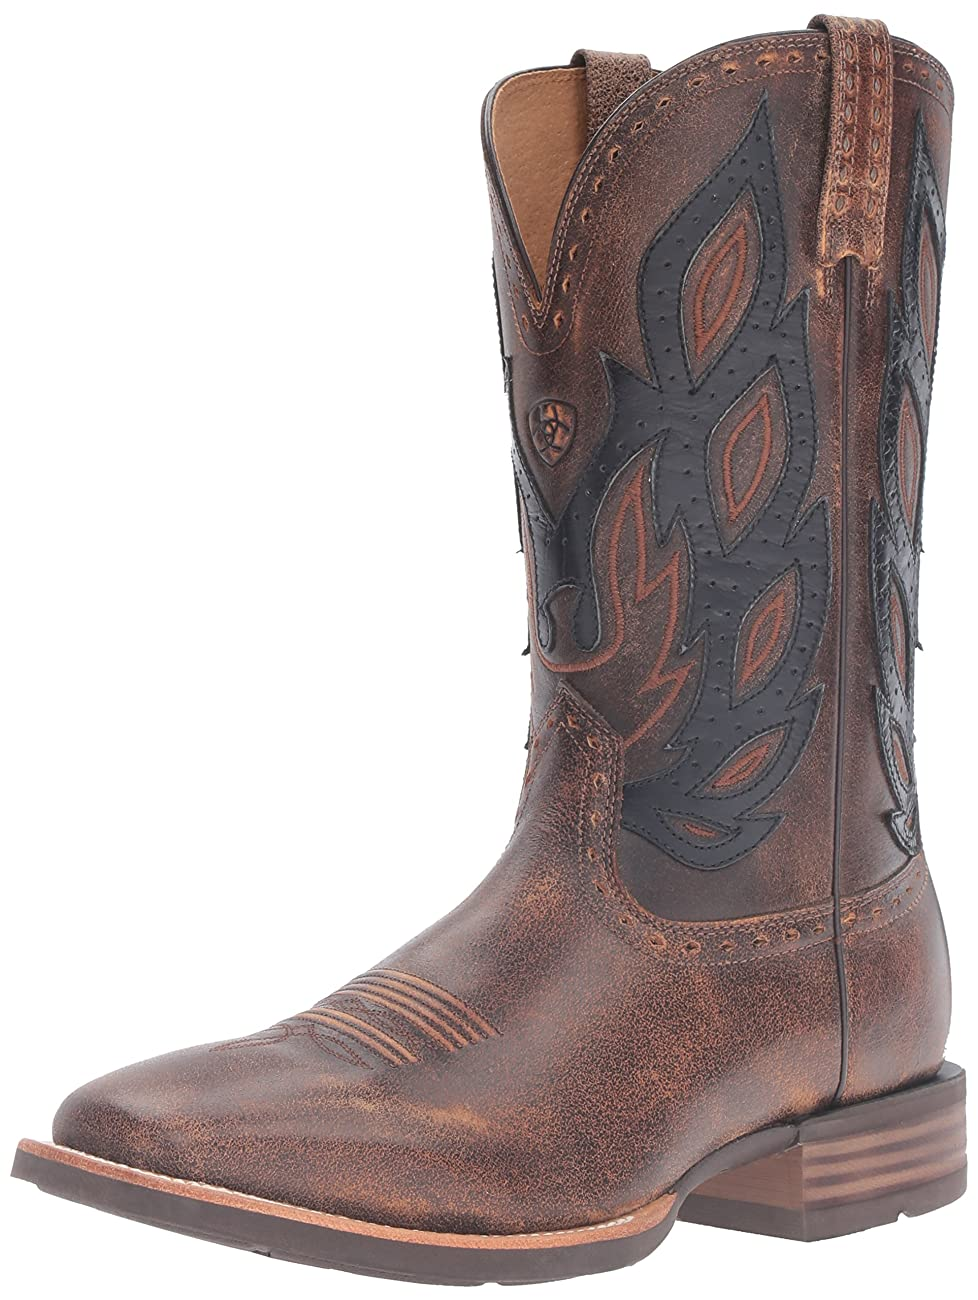 Ariat Men's Nighthawk Western Cowboy Boot 0